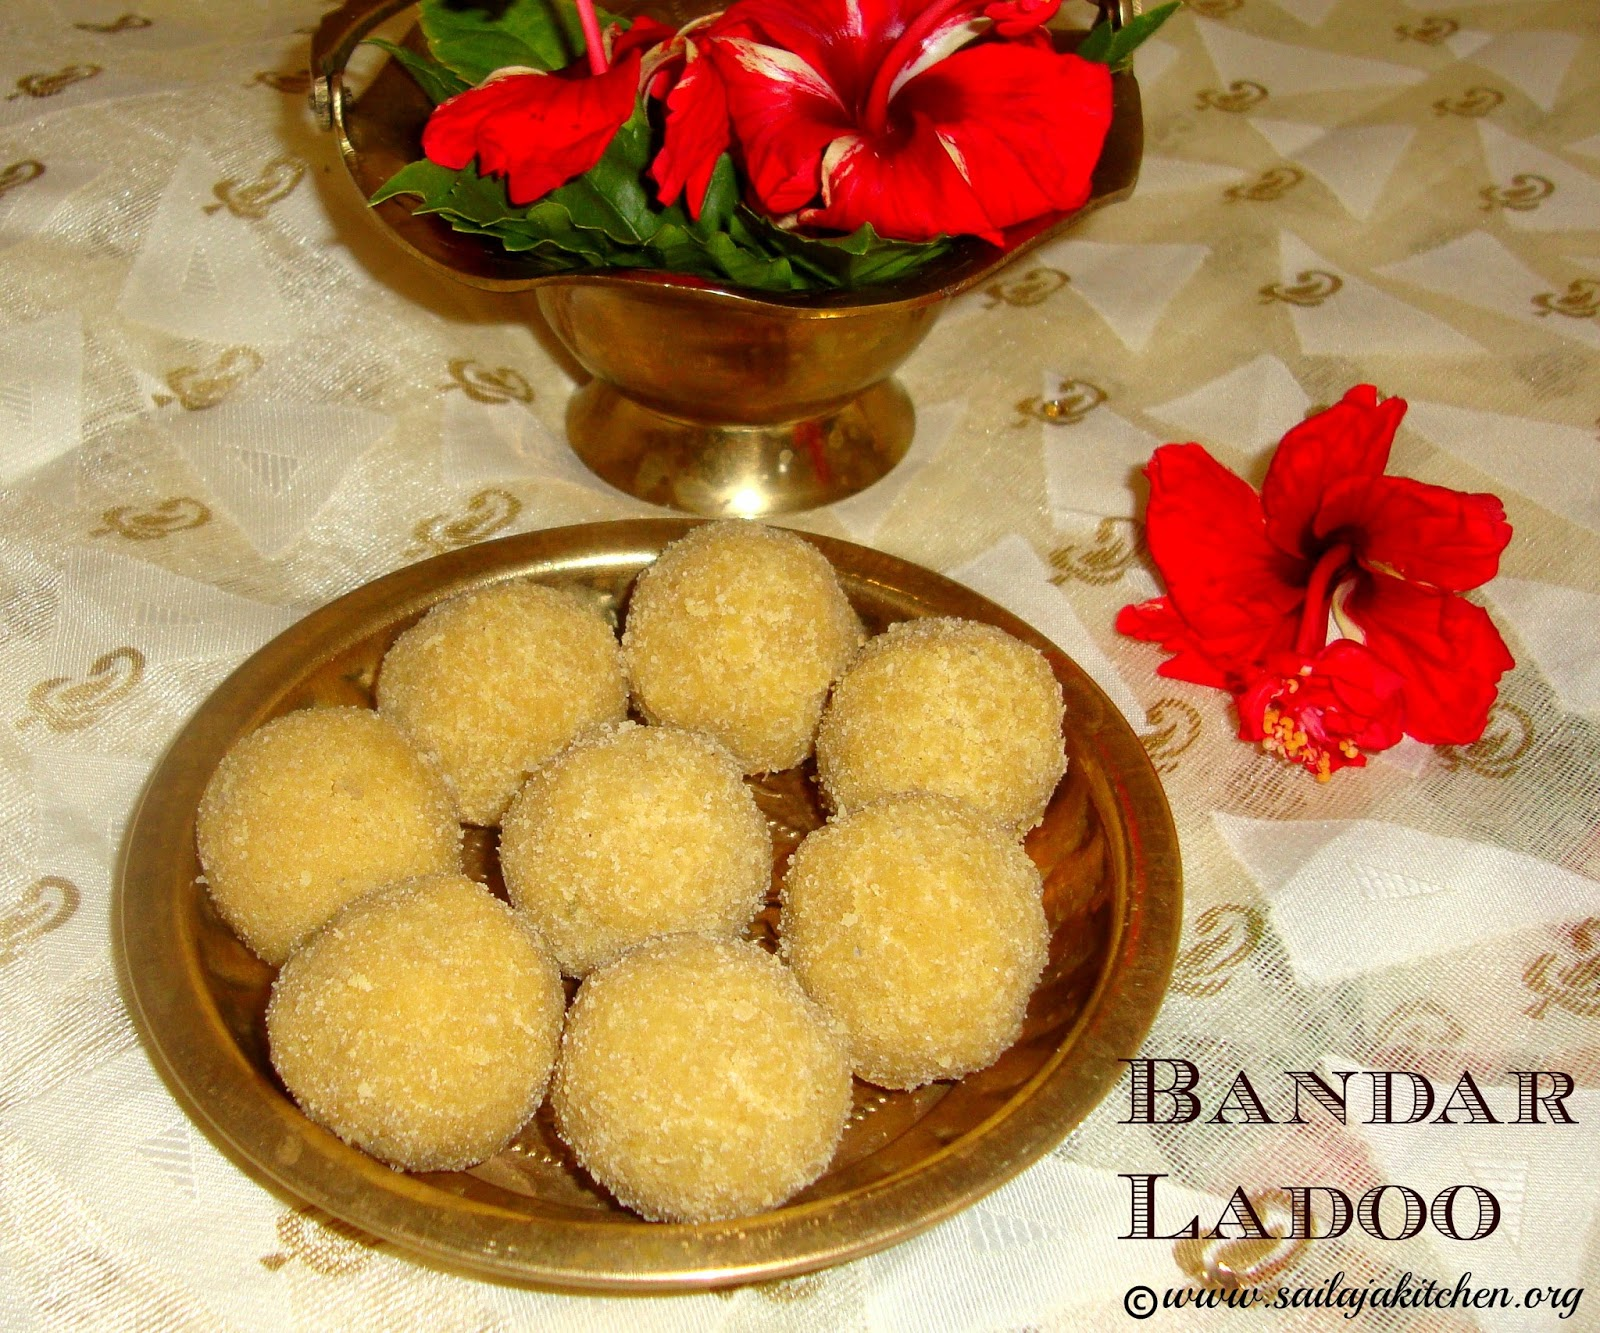 Sailaja kitchena site for all food lovers a site for all food lovers forumfinder Image collections